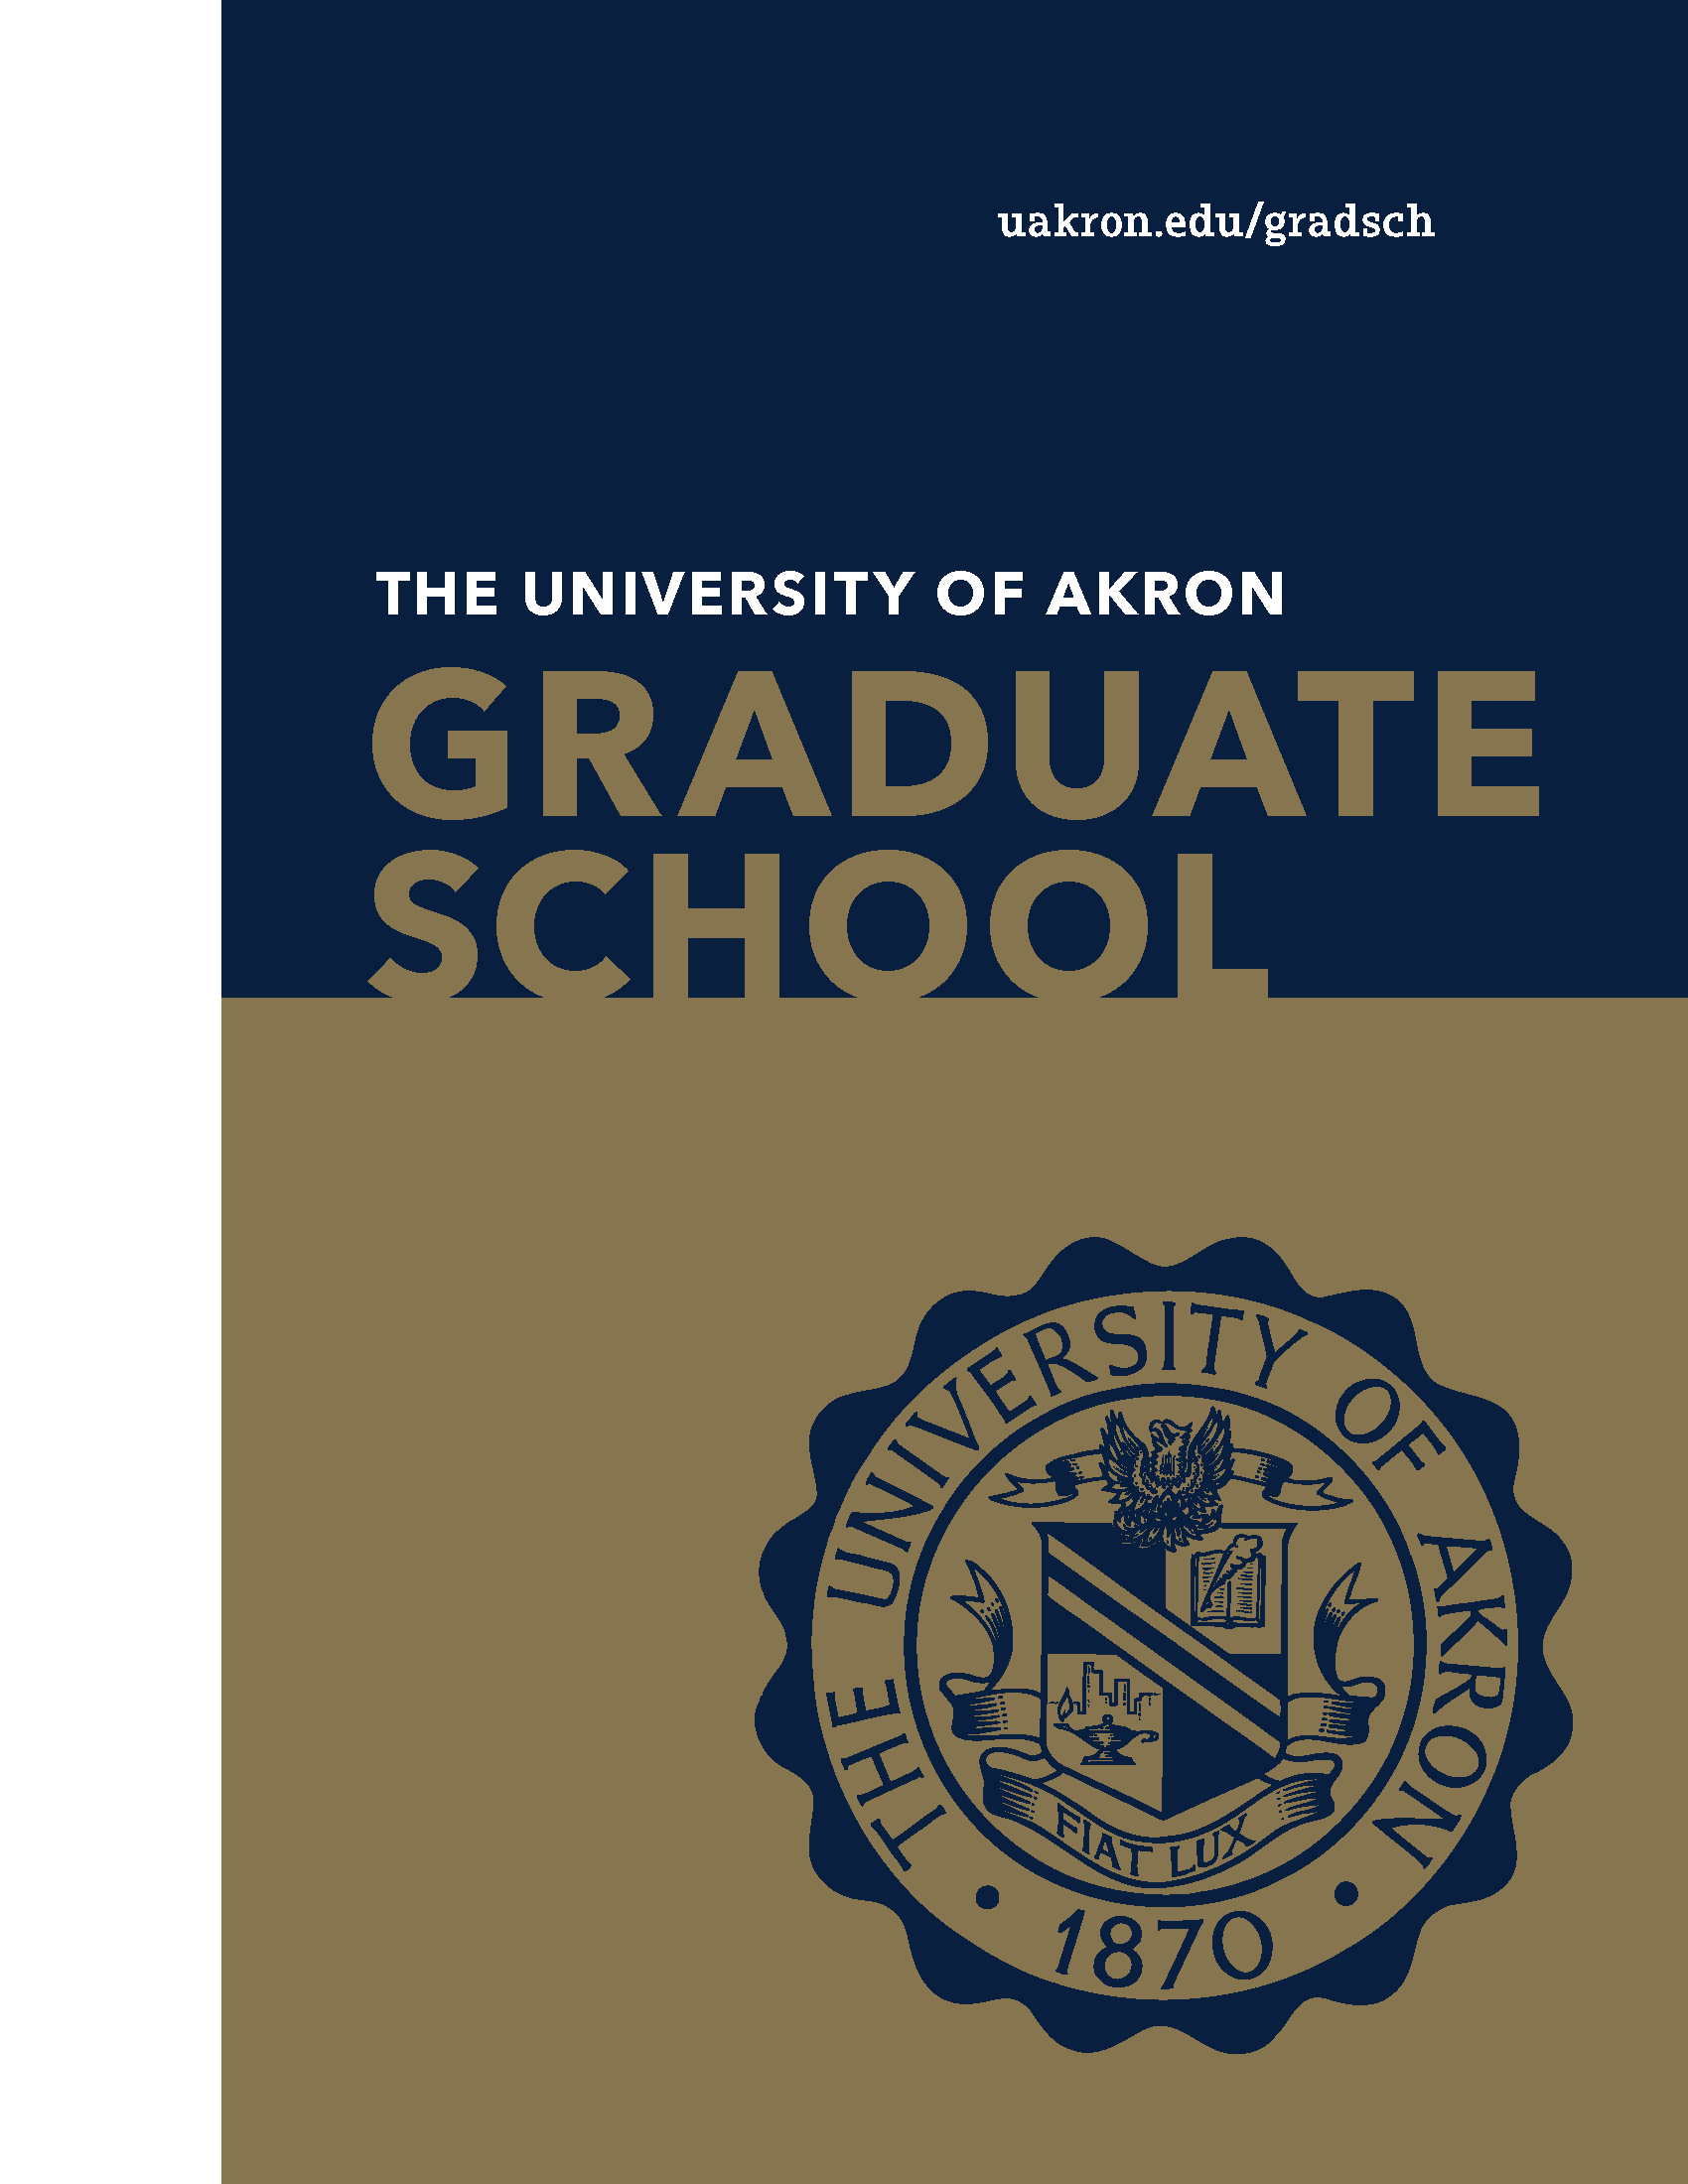 grad viewbook front cover